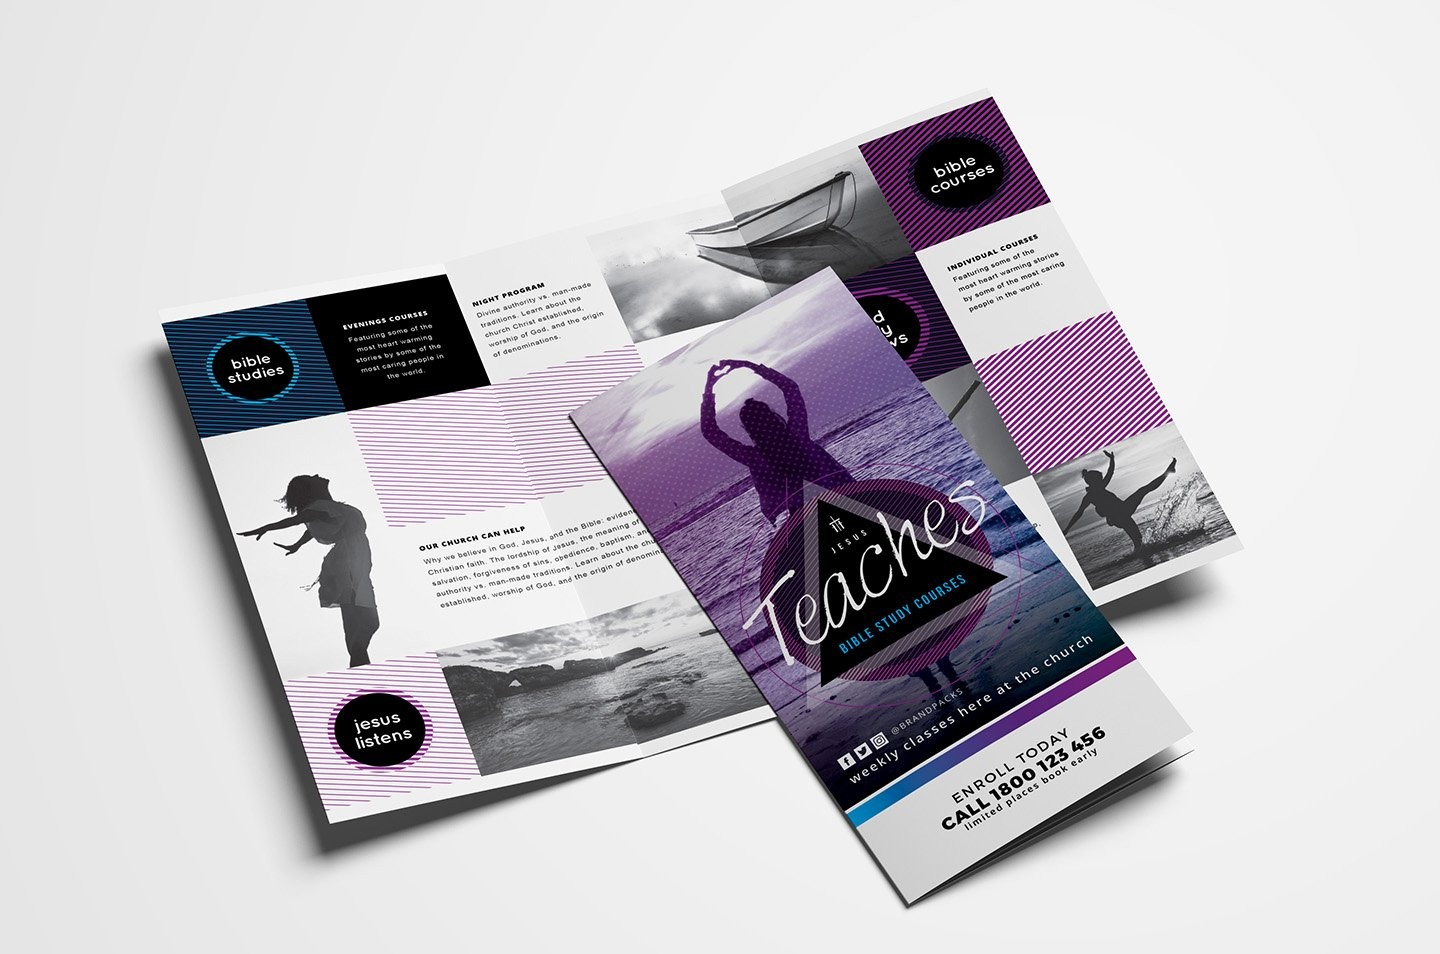 Free Church Templates Shop Psd & Illustrator Ai